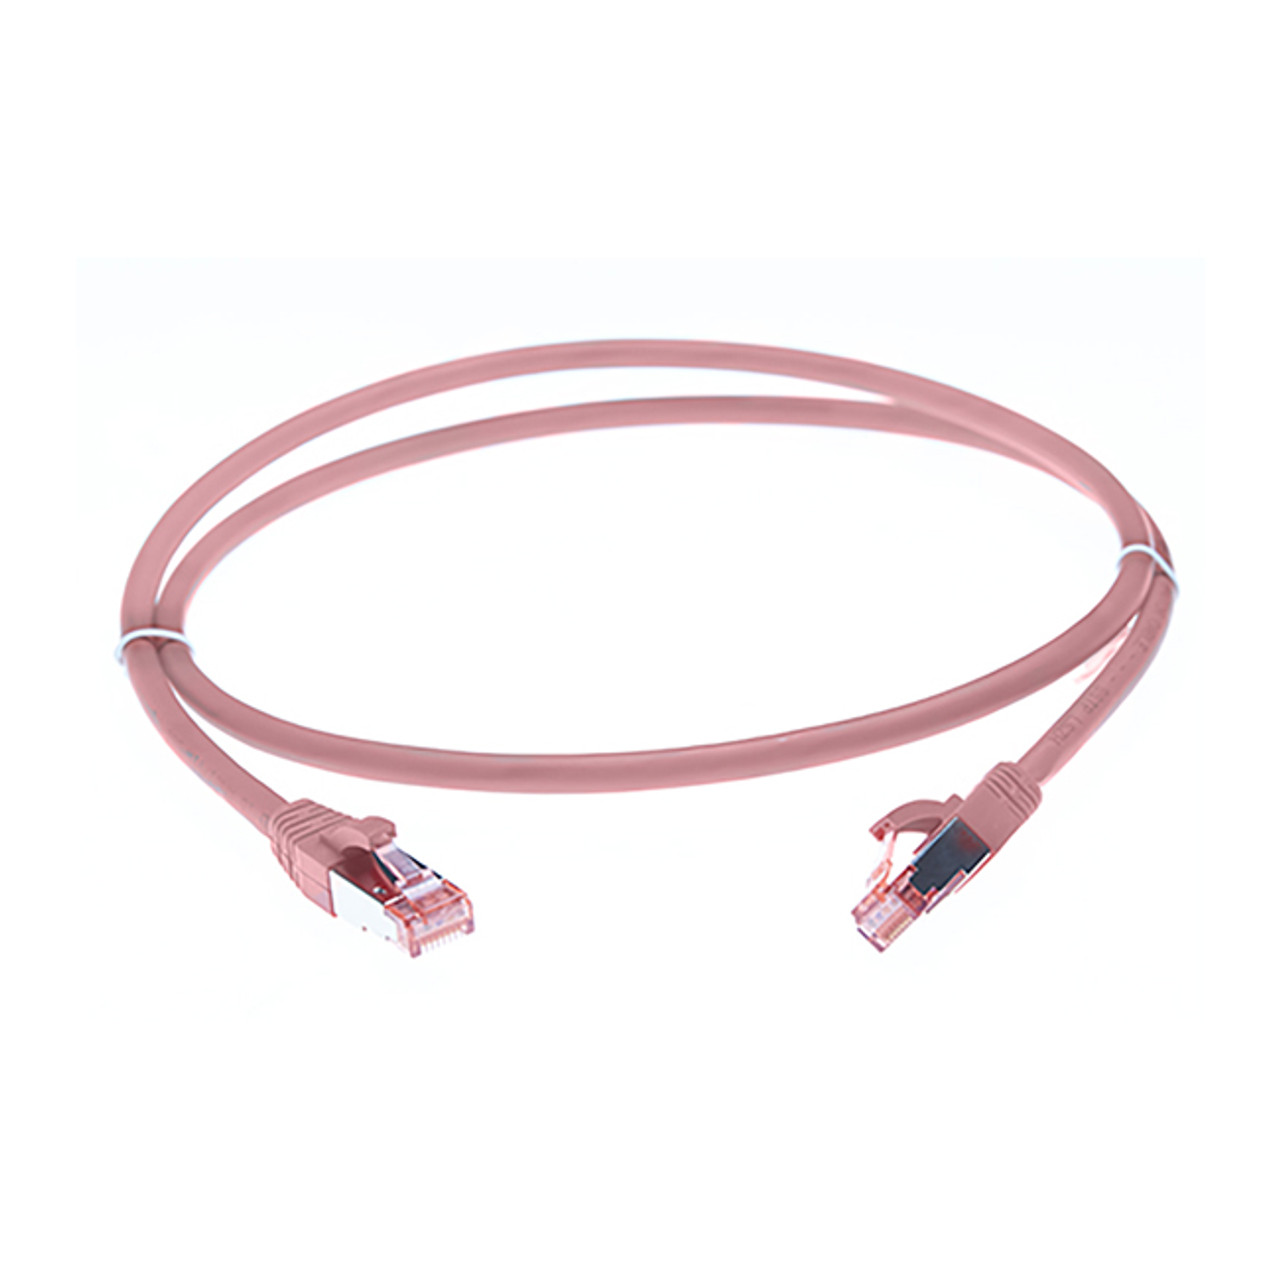 Image for 30m Cat 6A S/FTP LSZH Ethernet Network Cable. Pink CX Computer Superstore